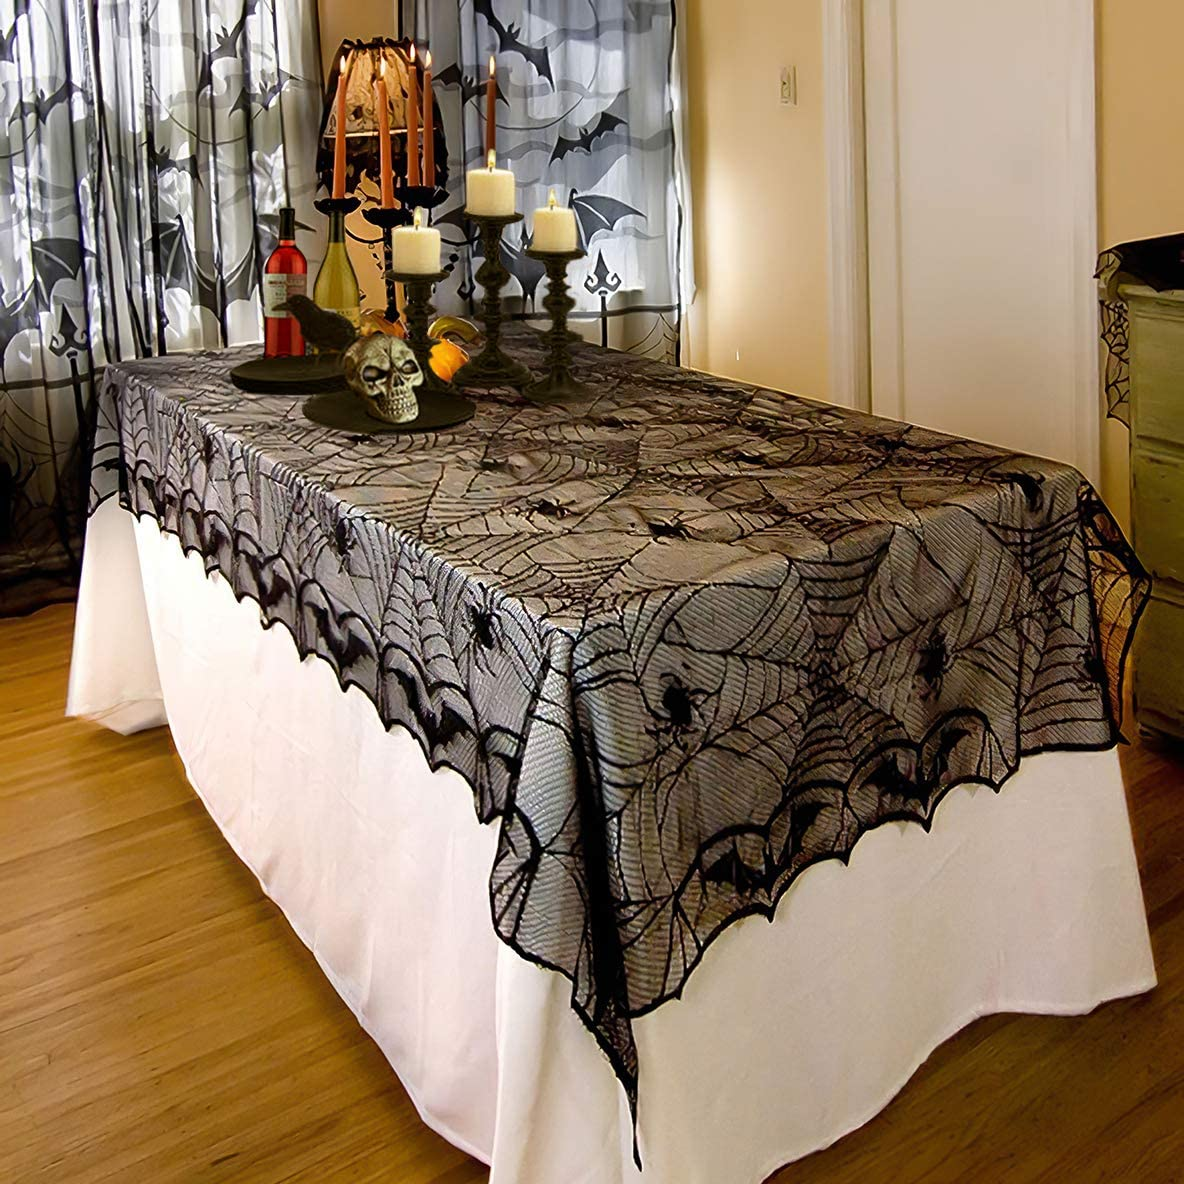 FUN LITTLE TOYS Rectangular Tablecloth Black Spider Web Tablecover, Halloween Decoration Party Supplies Scary Movie Nights 100 x 53 Inch